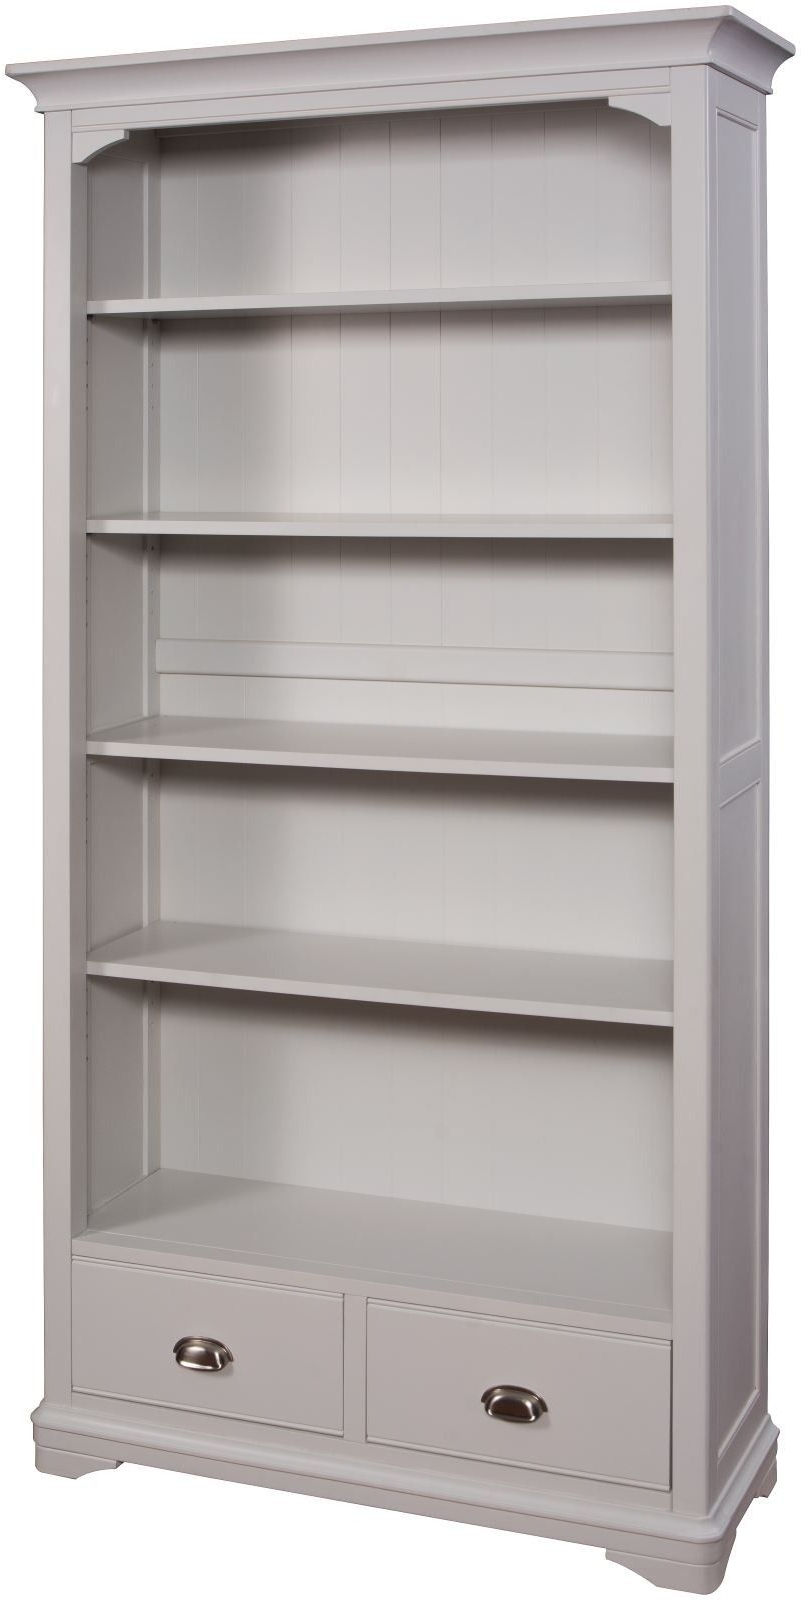 Stirring Tall Grey Bookcase Picture Design Narrow Decor Bookcases Within Most Up To Date Grey Bookcases (View 13 of 15)